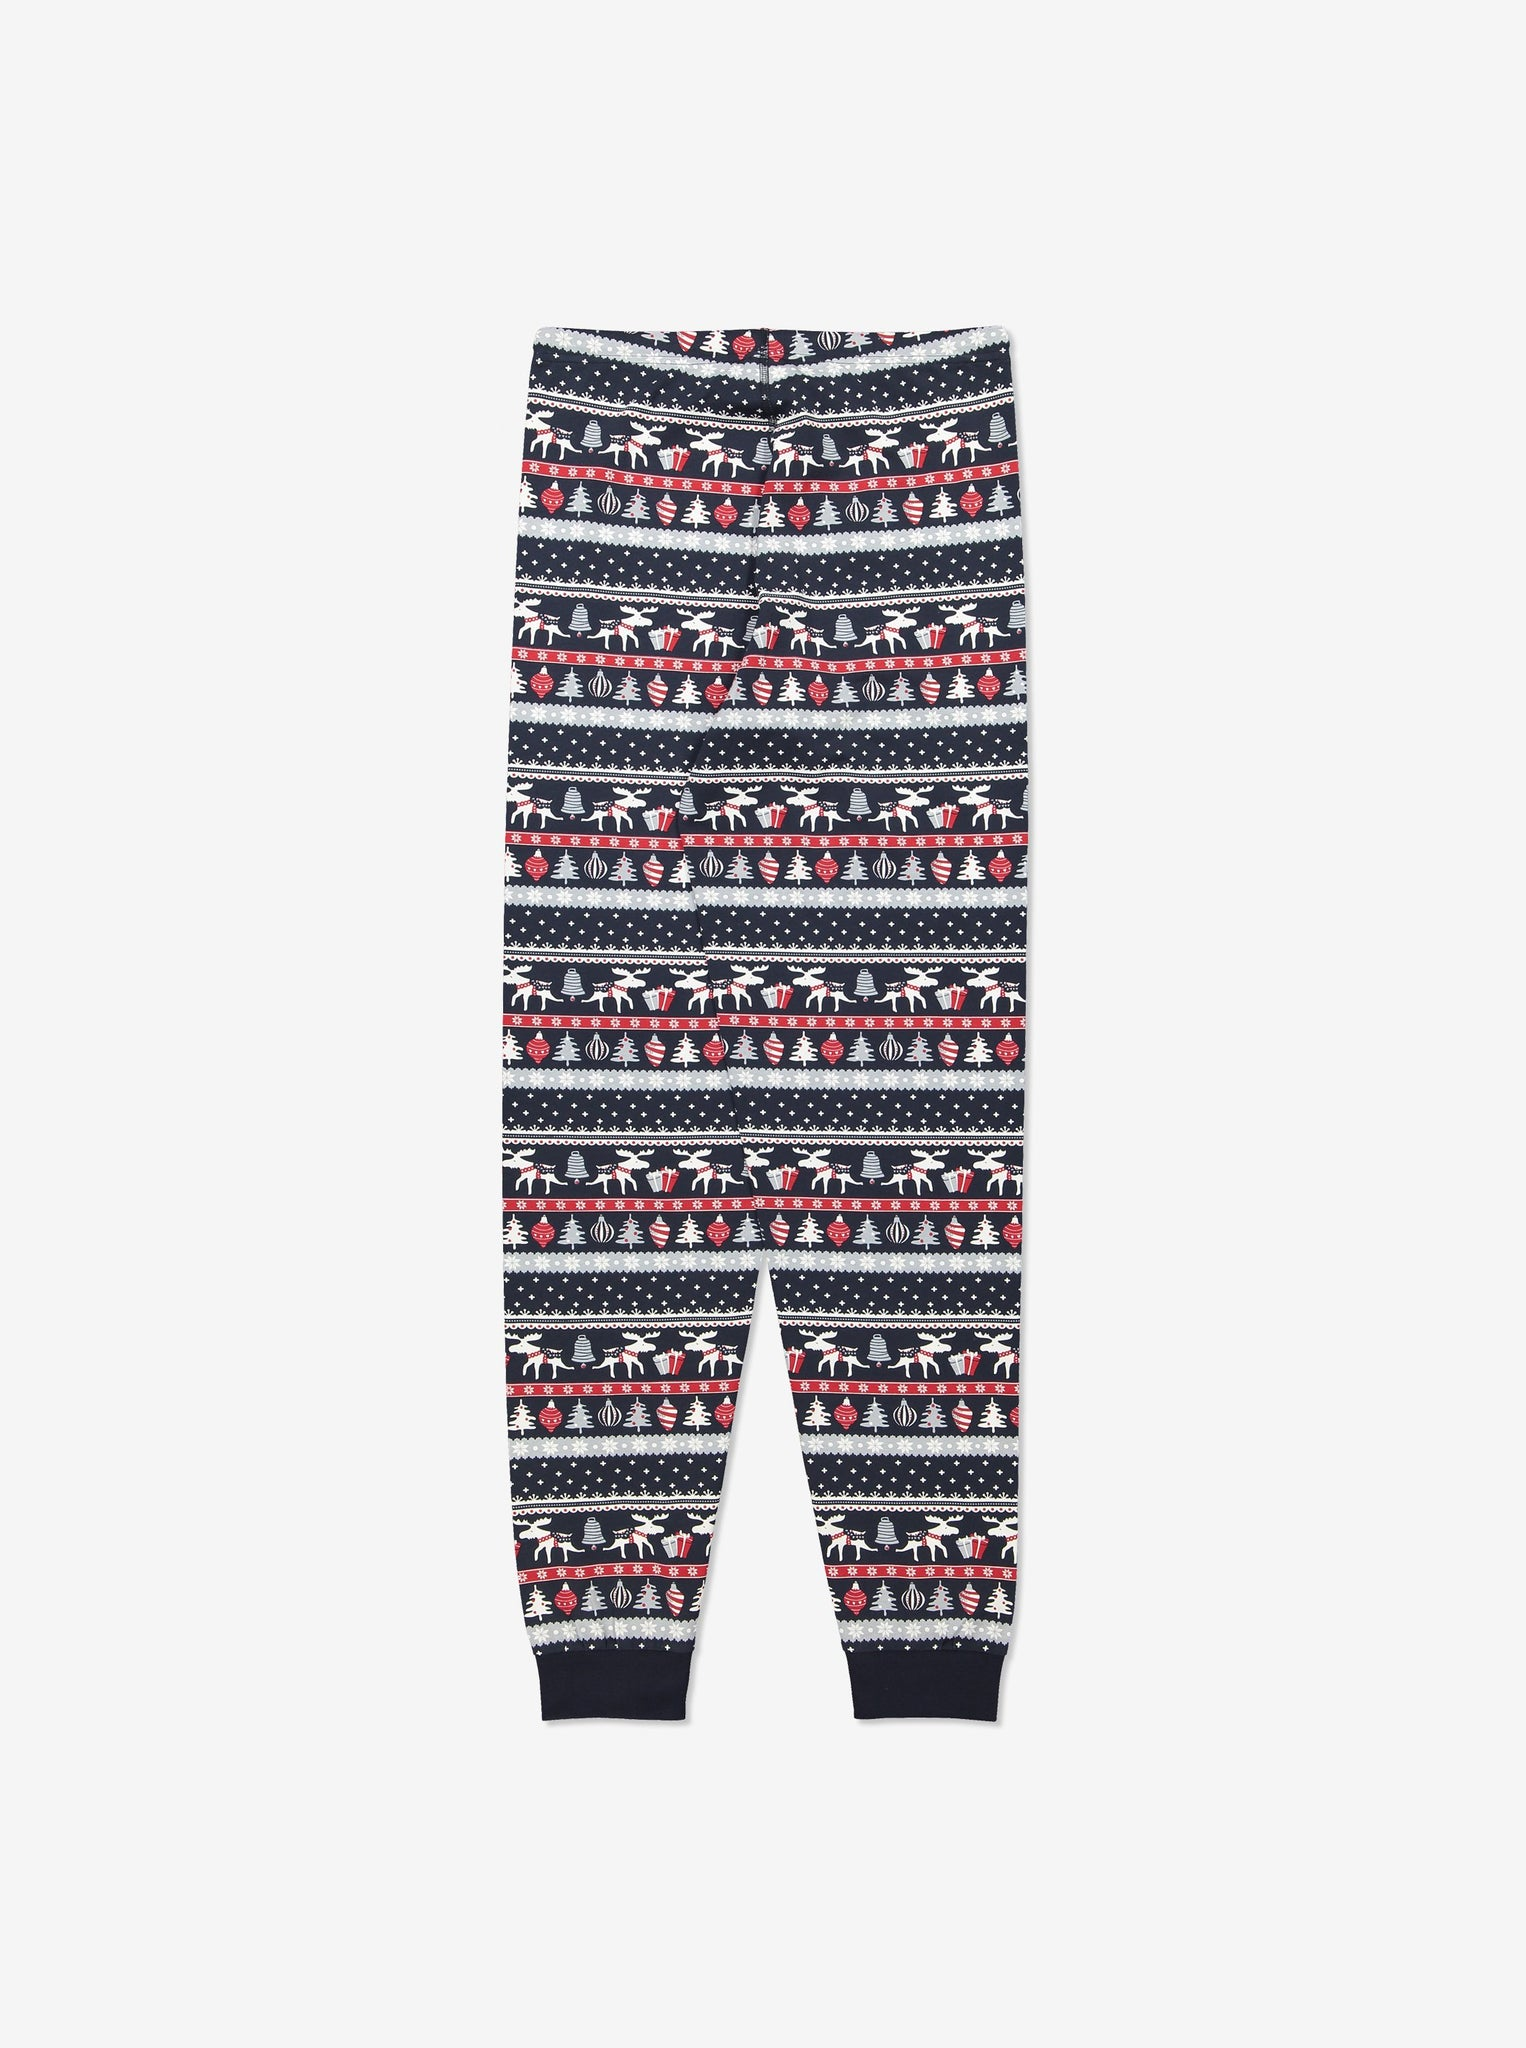 Adult Organic Cotton Christmas Pyjamas XS-XL Navy Unisex